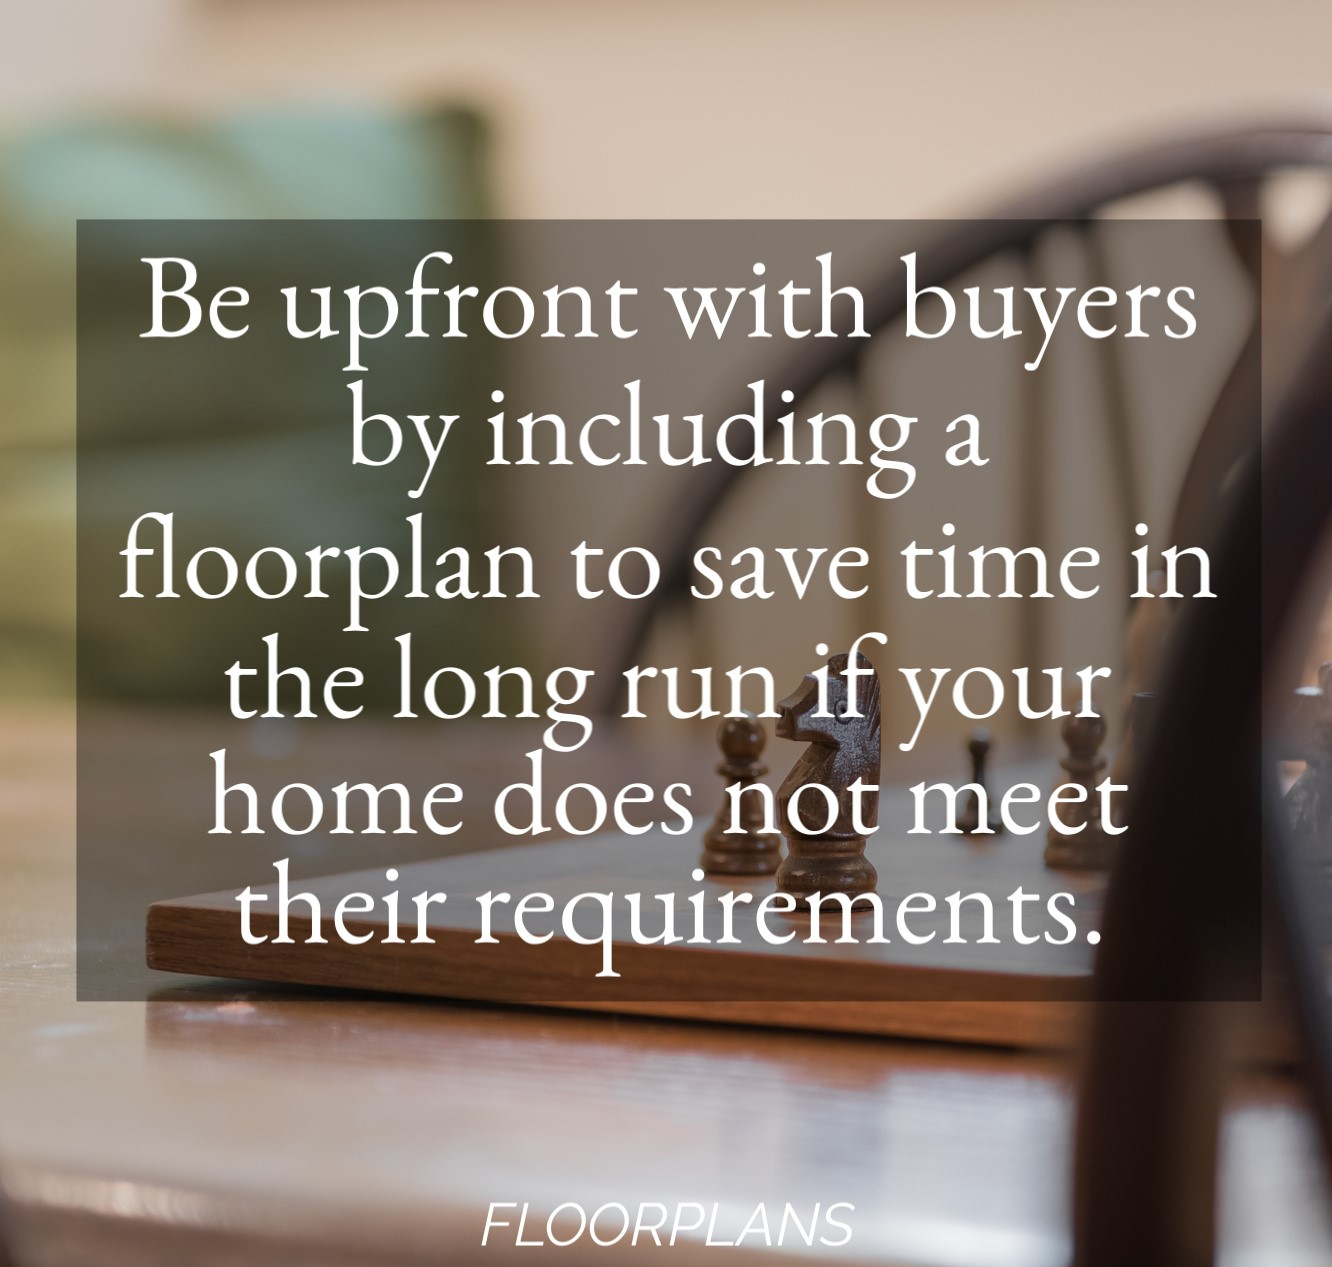 tg9-be-upfront-with-buyers